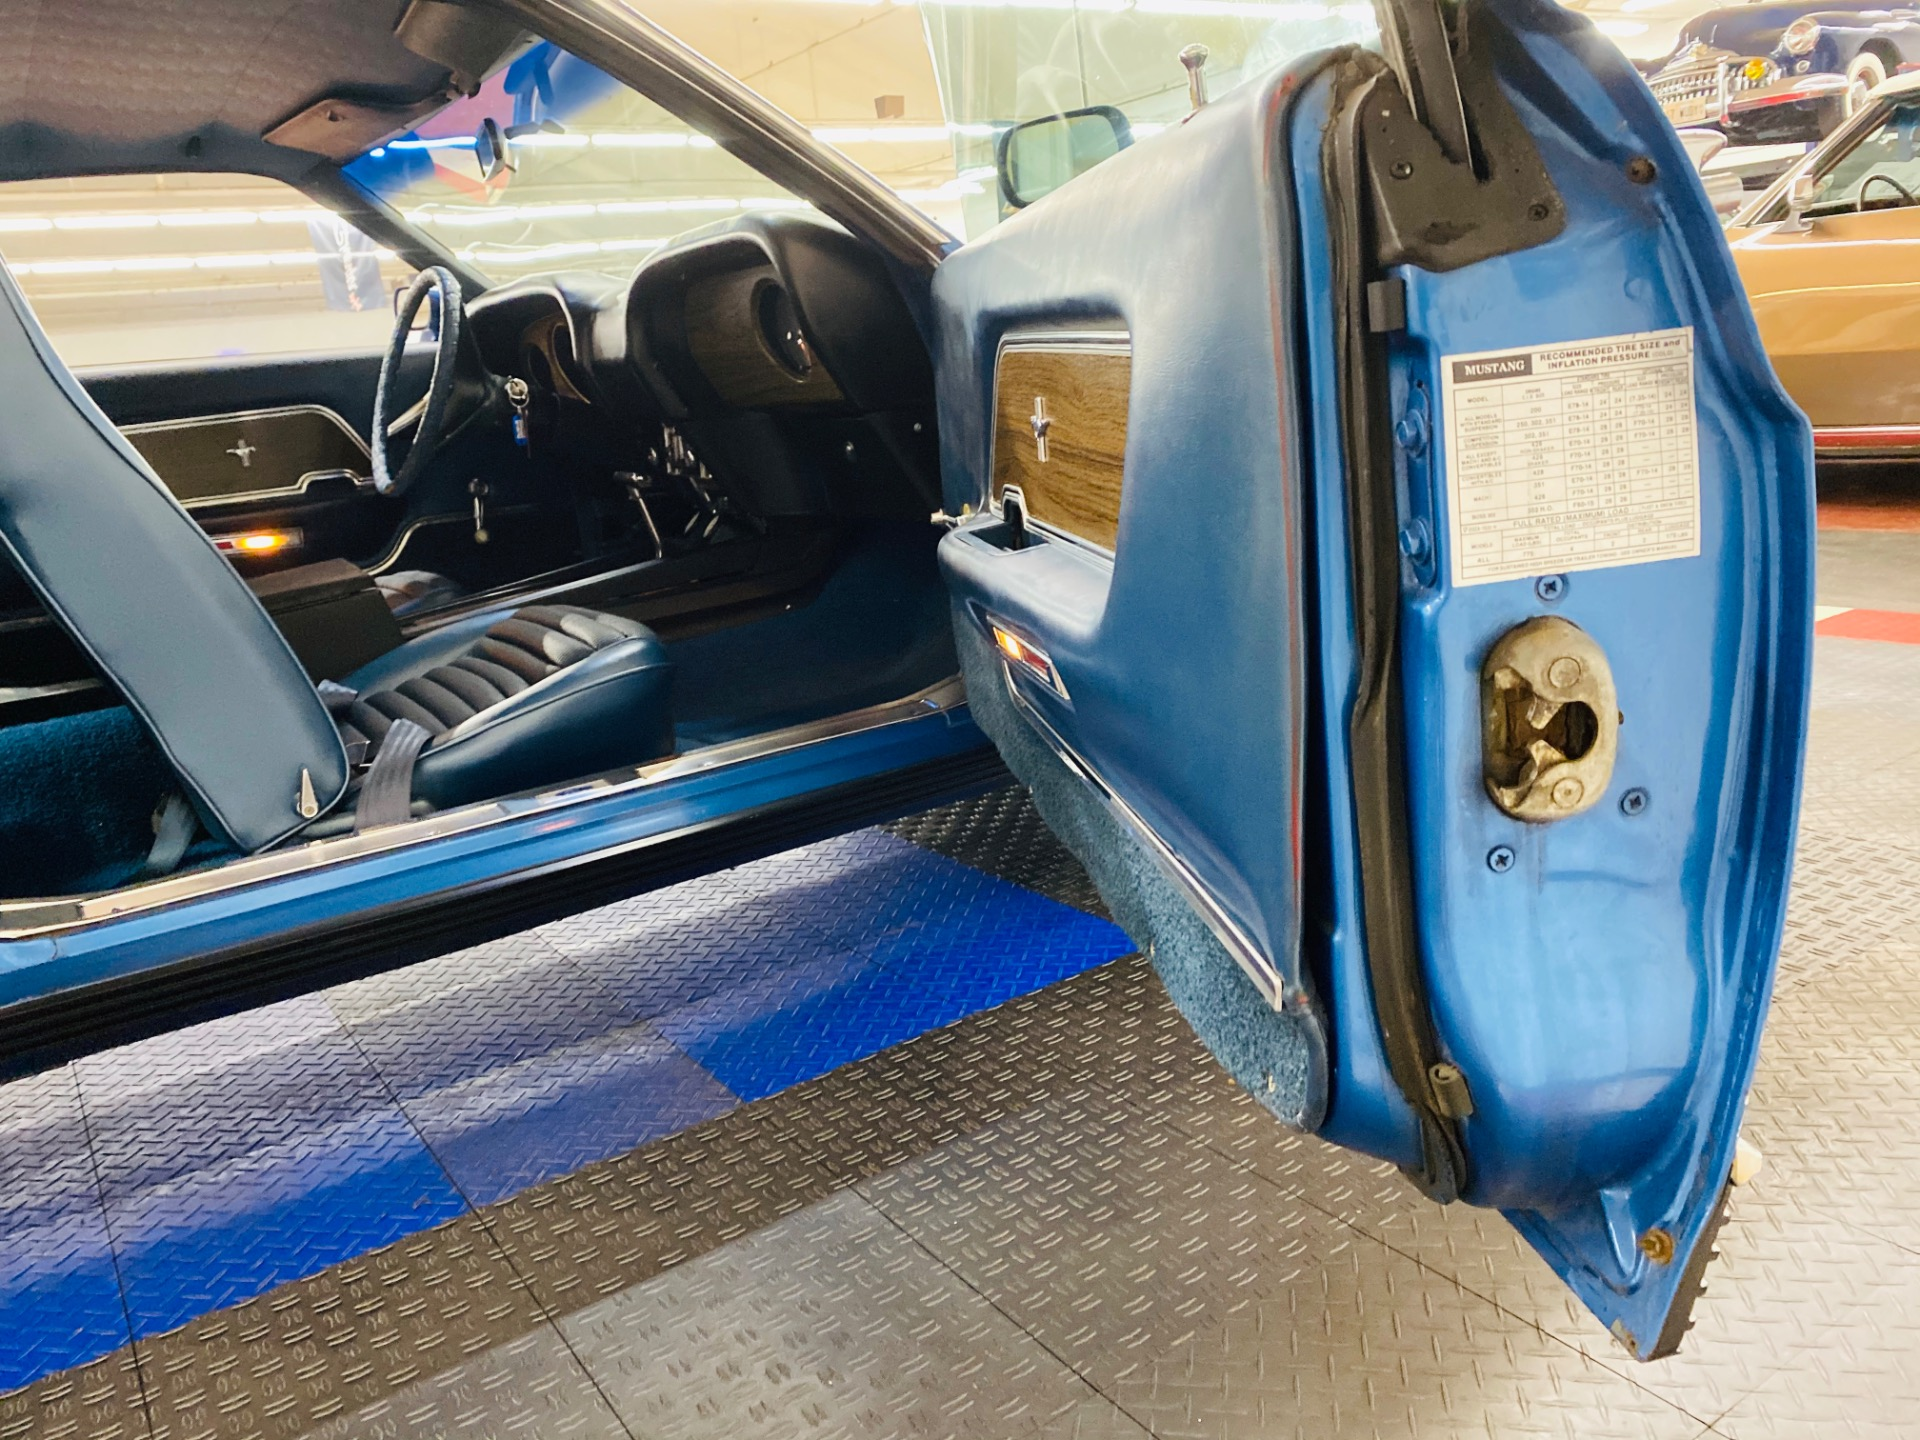 Used 1970 Ford Mustang -MACH 1 SPORTS ROOF - MARTI REPORT - 351 SHAKER HOOD - SEE VIDEO - | Mundelein, IL